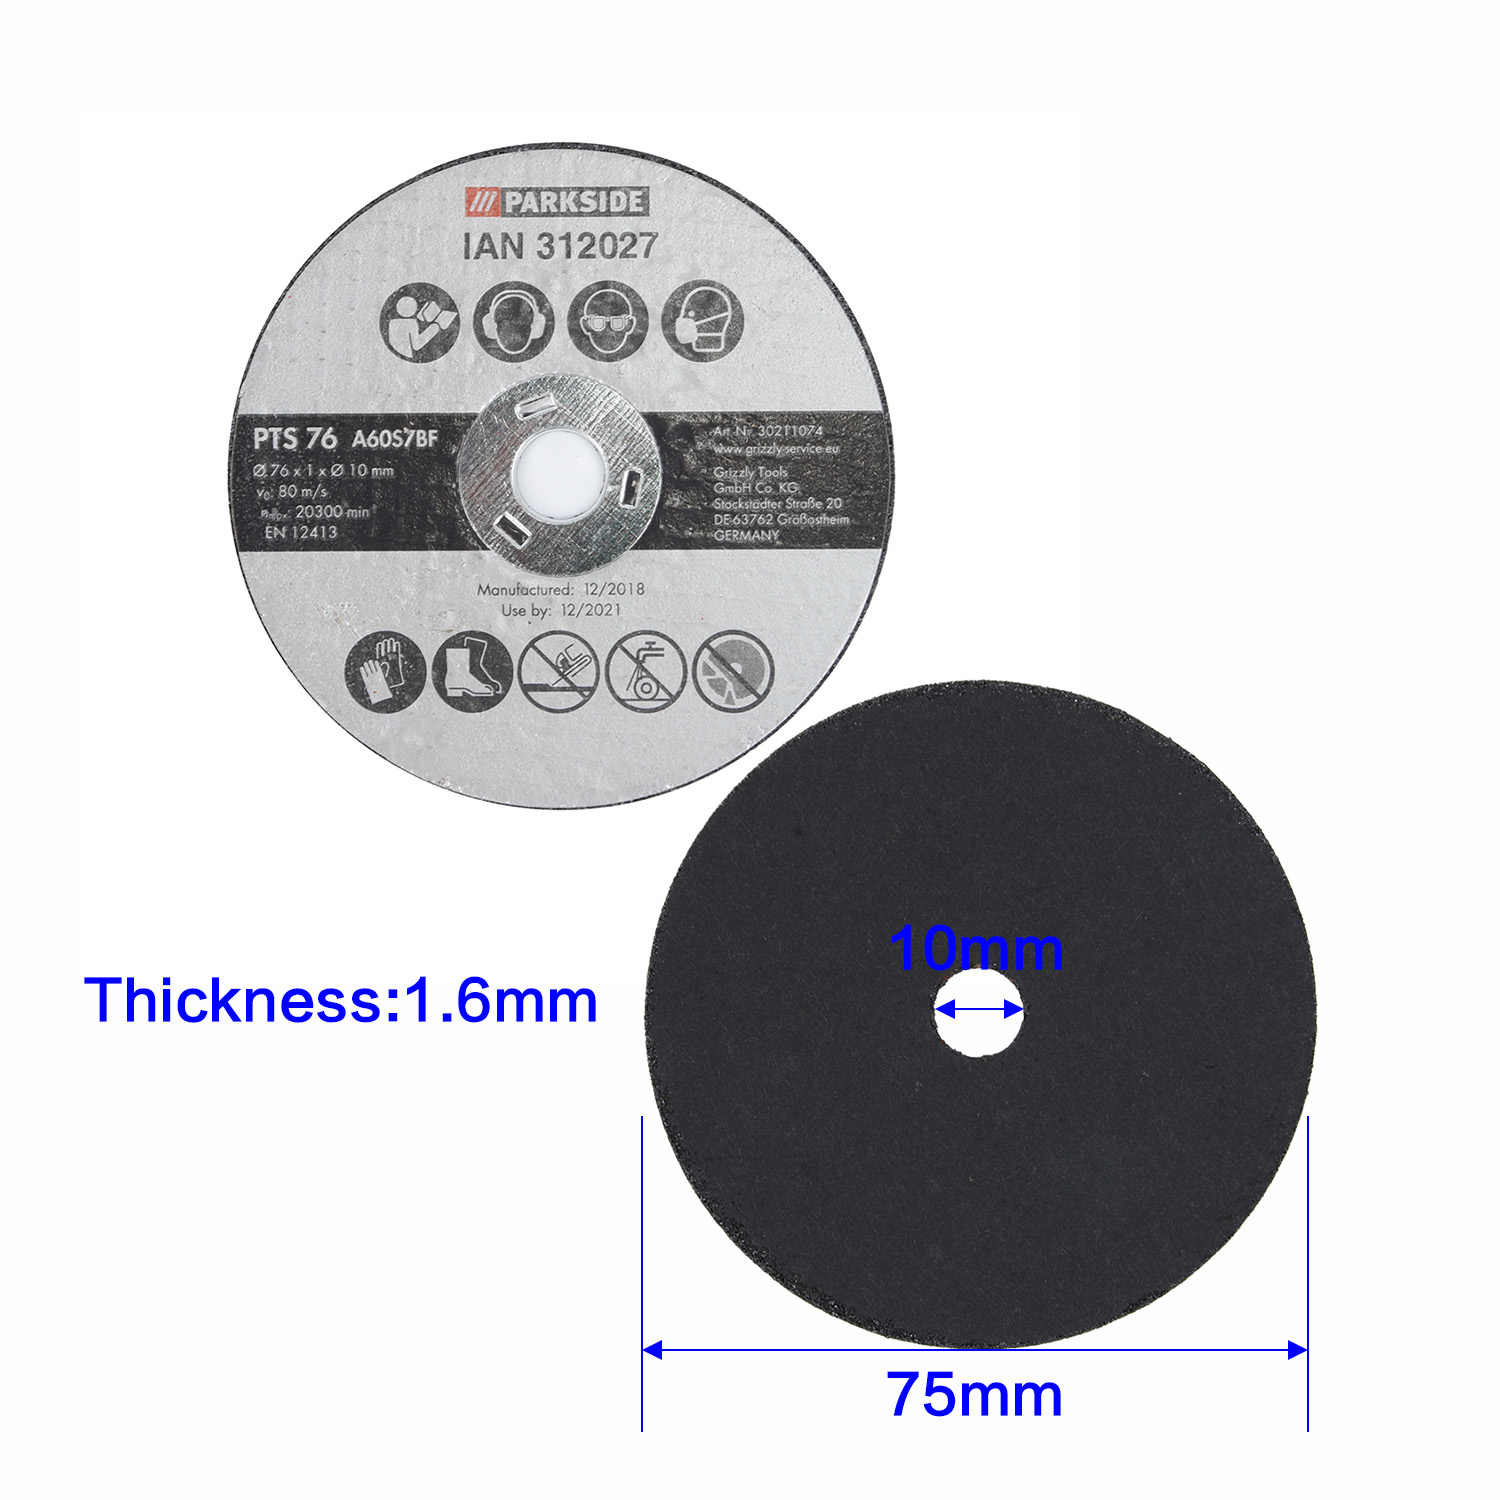 20Pcs Fiber Resin Cutting Disc Wood Cut Off Wheel Blade 10mm Hole Cutter 1.6mm Thickness 3 Inch 75mm Resin Cutting Disc